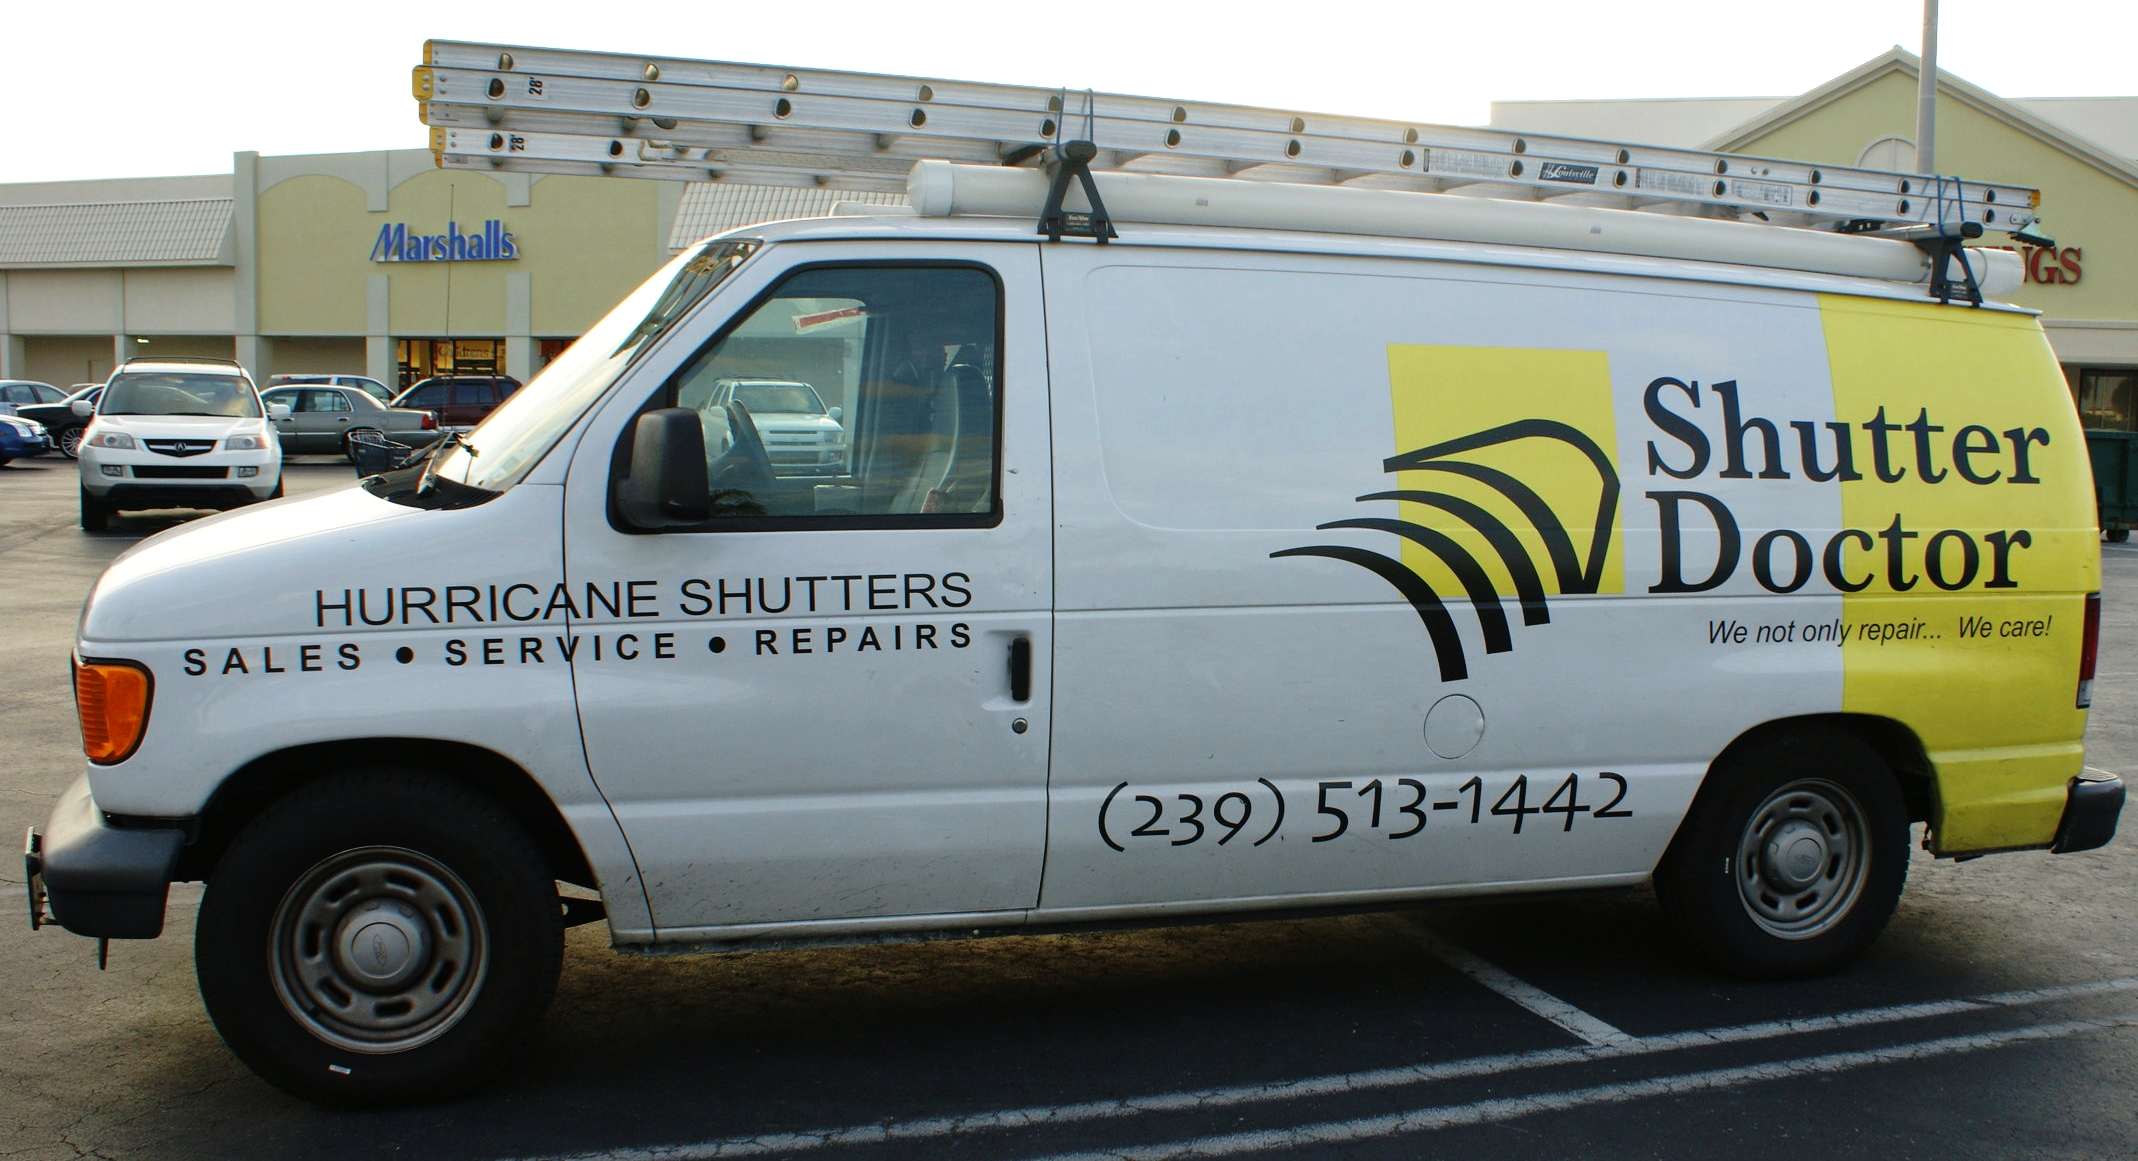 Repair service maintenance hurricane shutter